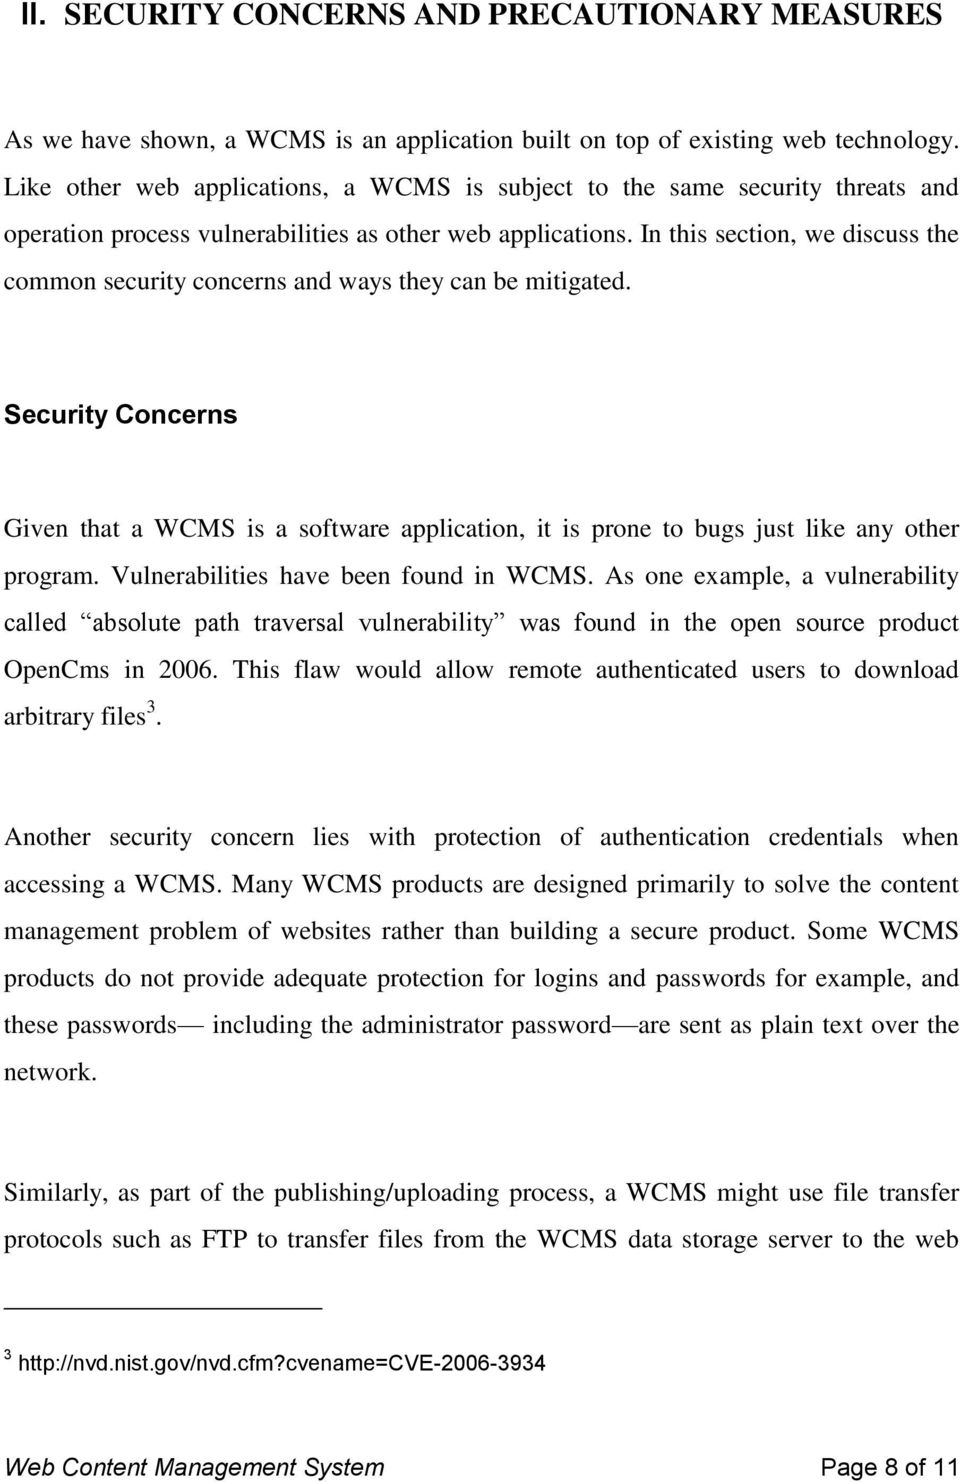 In this section, we discuss the common security concerns and ways they can be mitigated. Security Concerns Given that a WCMS is a software application, it is prone to bugs just like any other program.